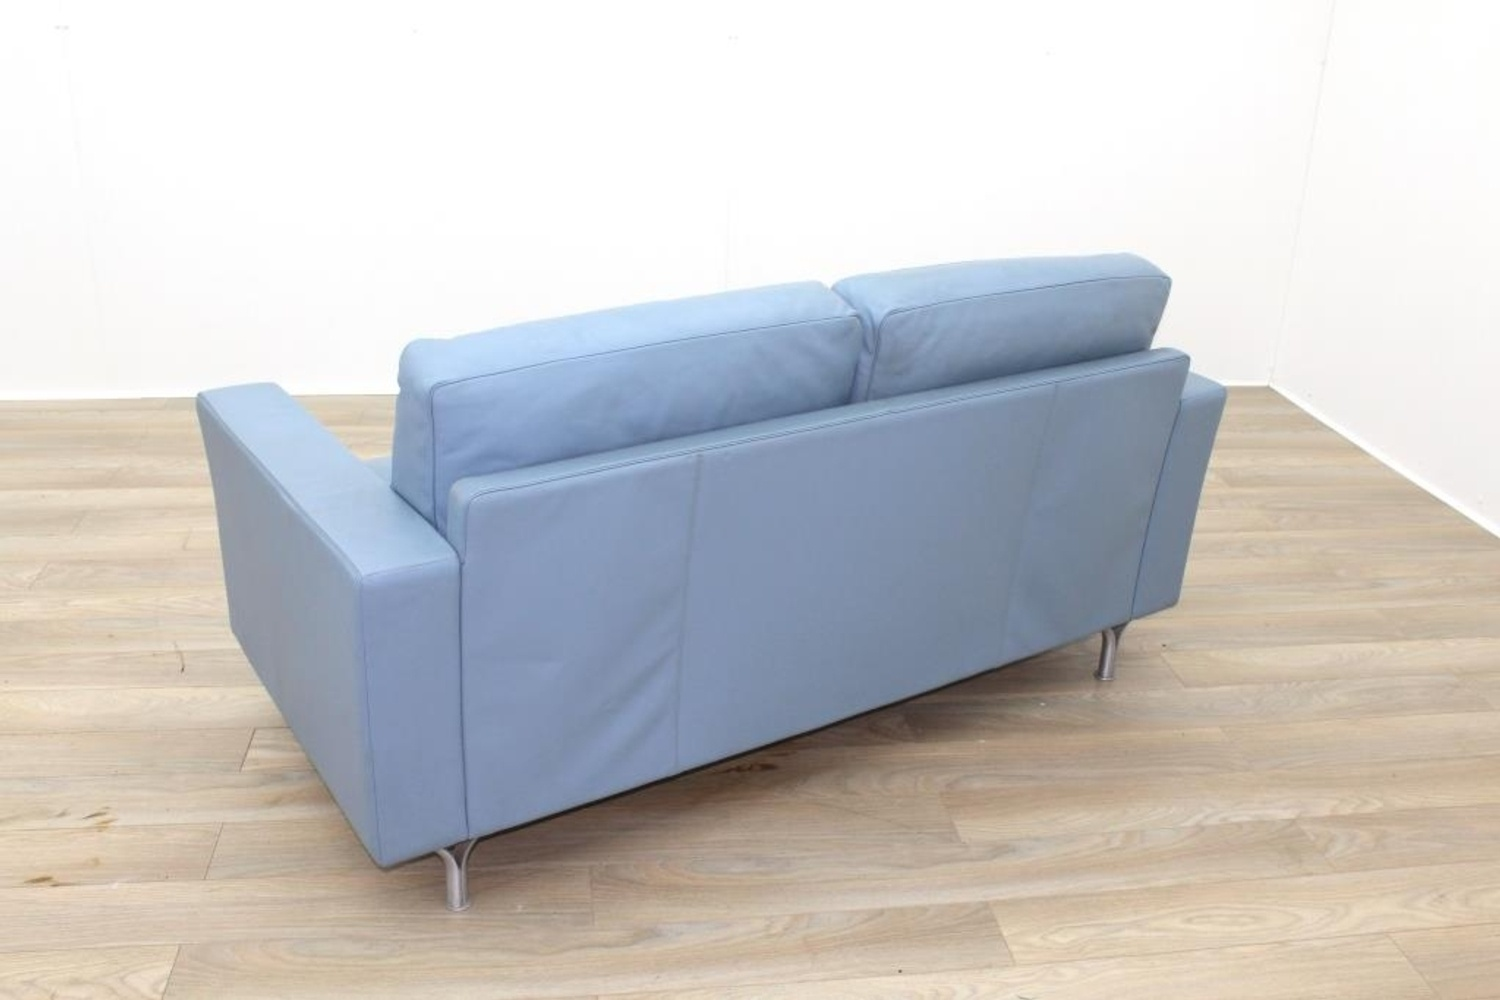 Poltrona Frau Blue Leather Executive Office Sofa Ebay